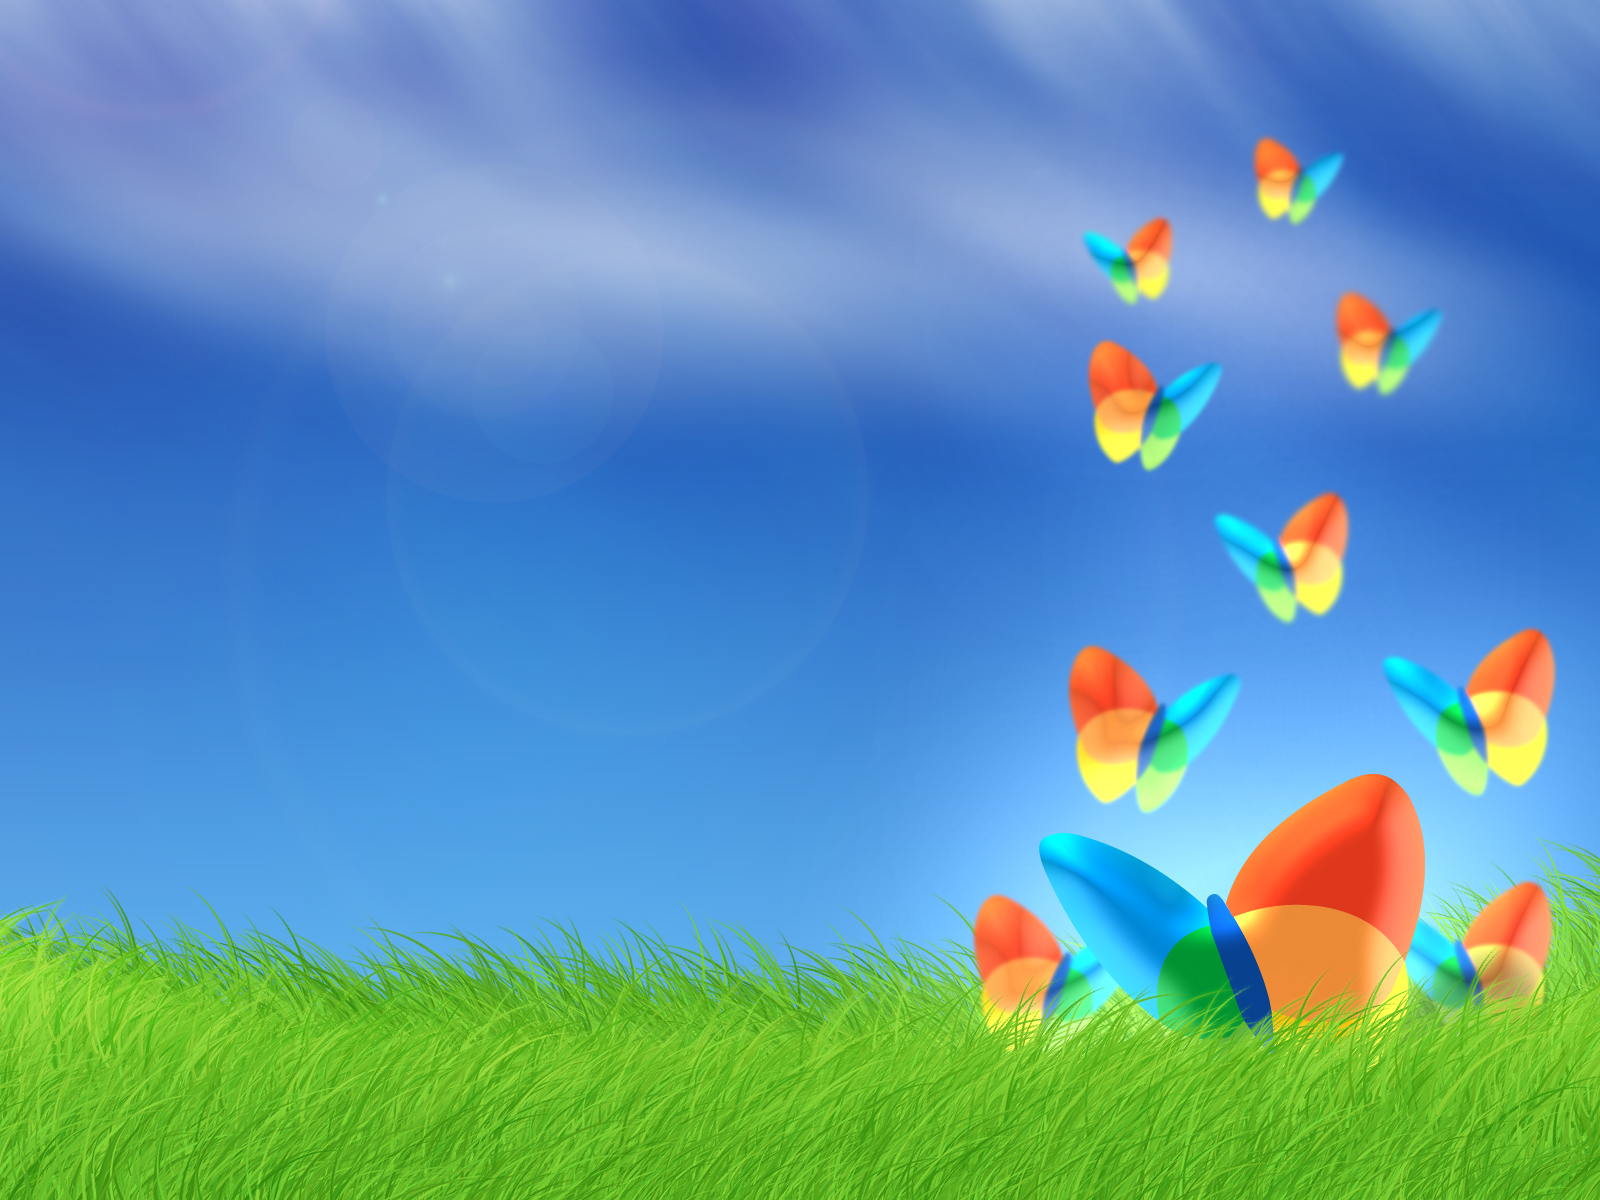 found for Comedyoutlet Download 45 Hd Windows Xp Wallpapers For 1600x1200